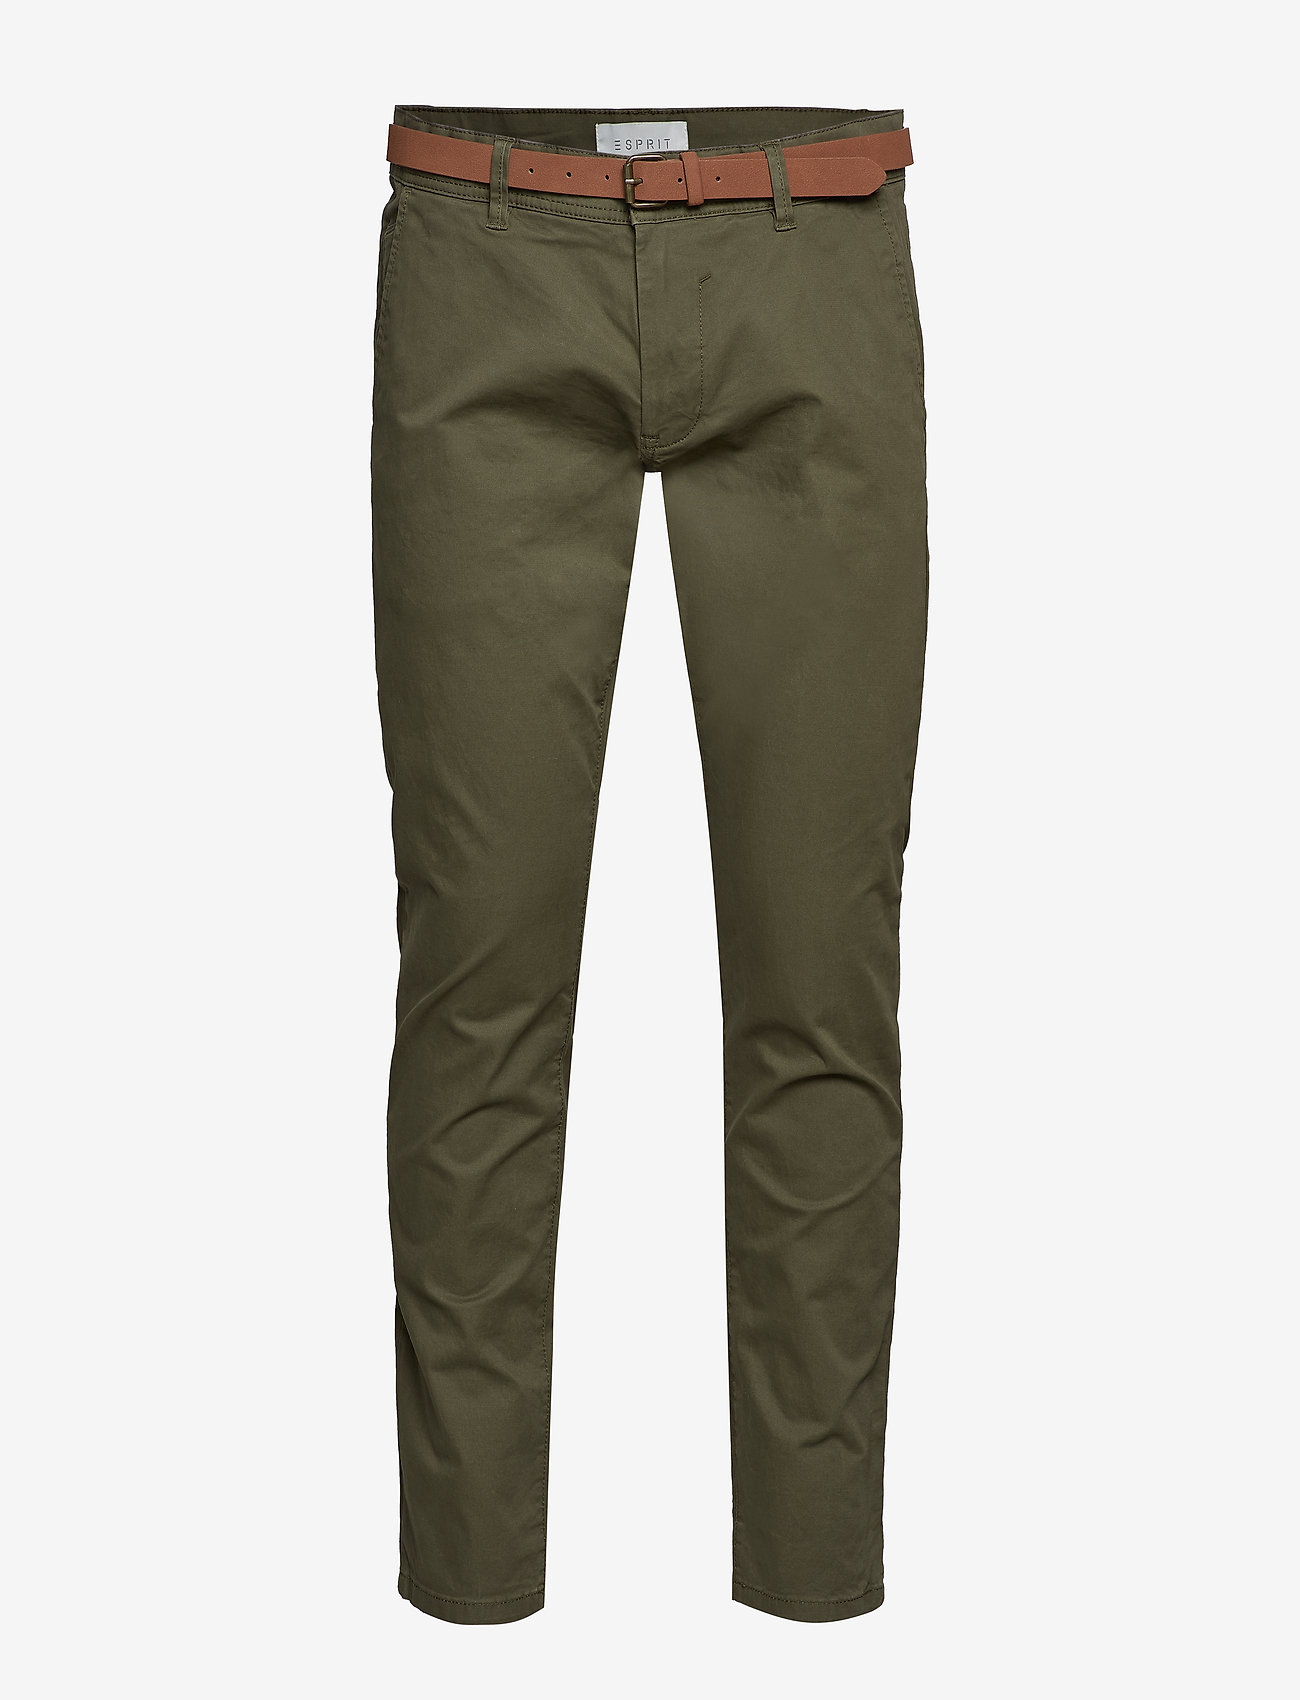 Esprit Casual - Pants woven - chino's - olive - 0